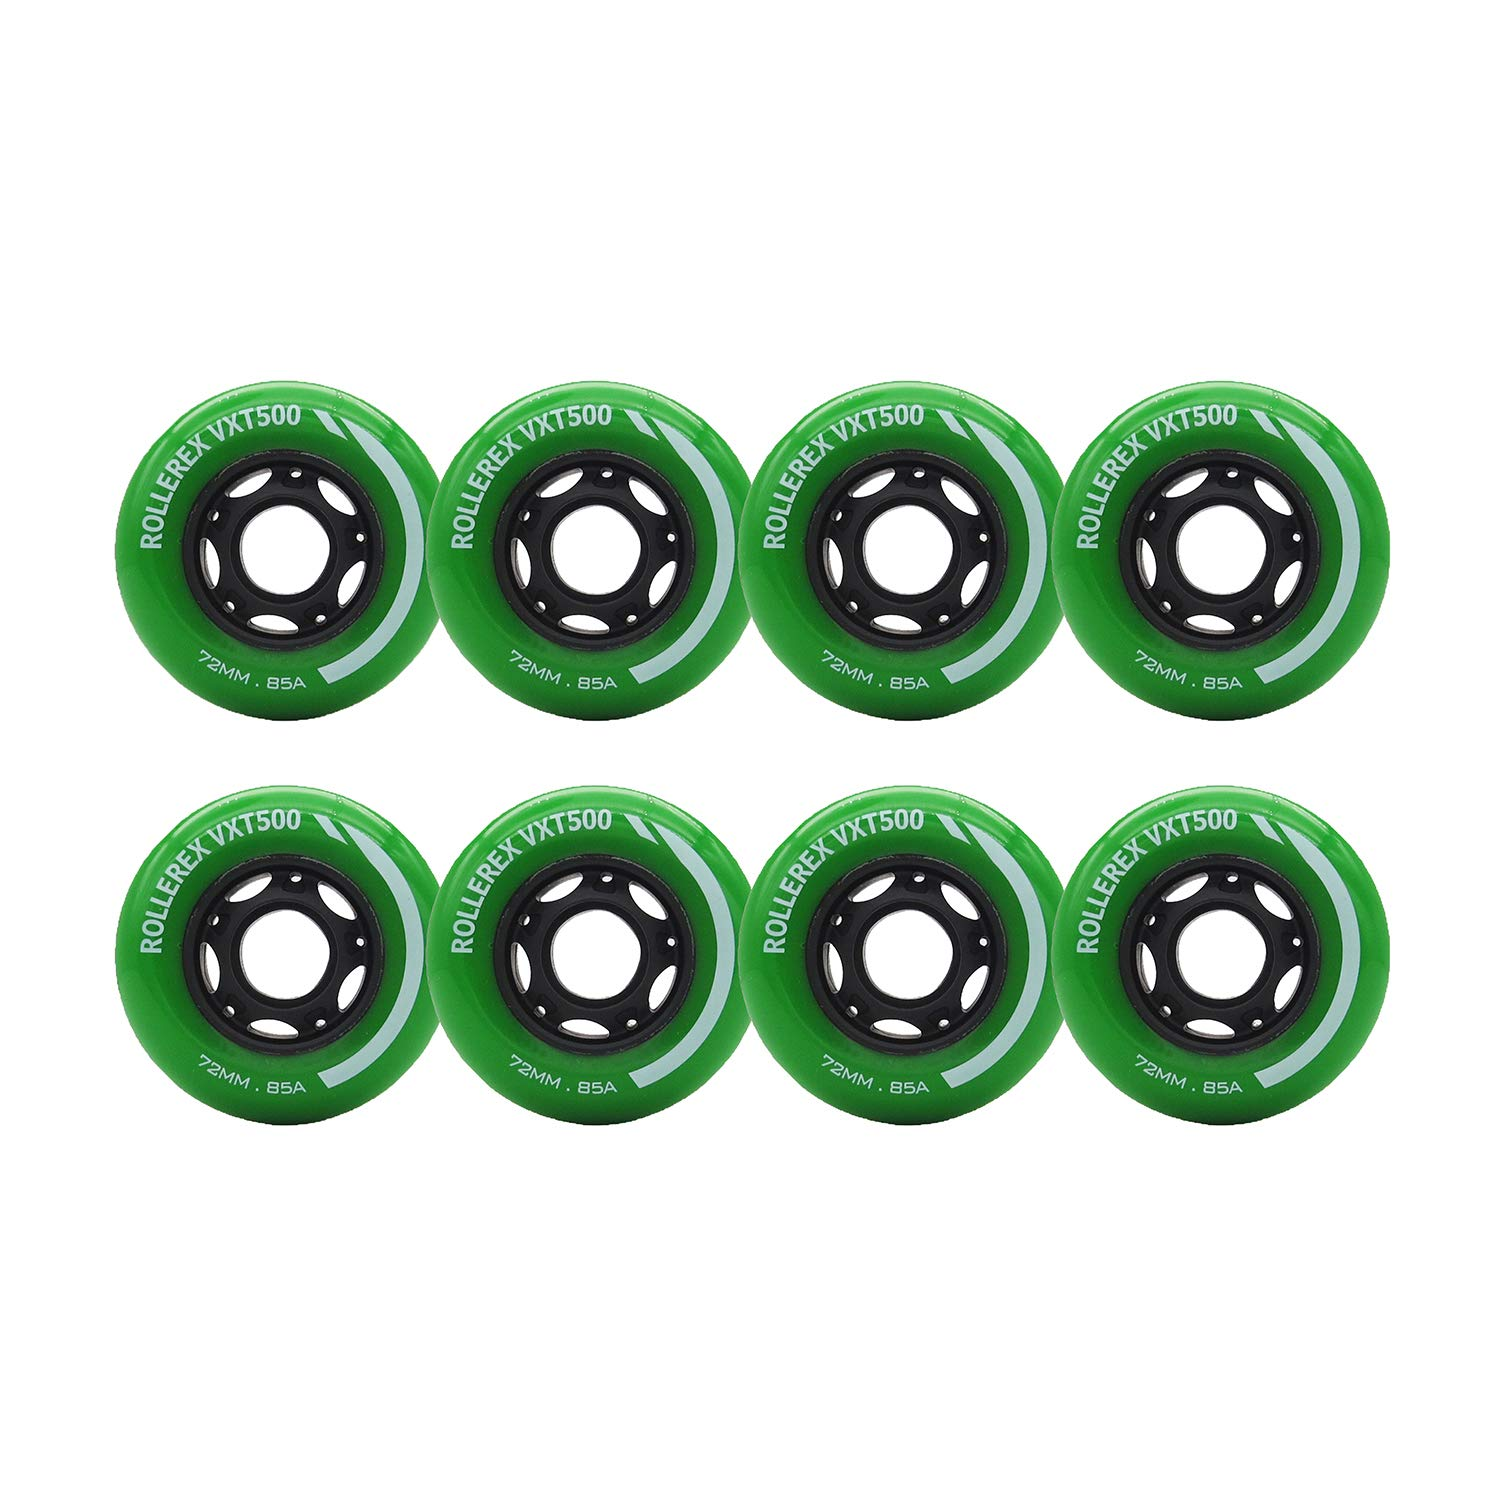 Rollerex VXT500 Inline Skate Wheels (8-Pack) (Turf Green, 72mm) by Rollerex